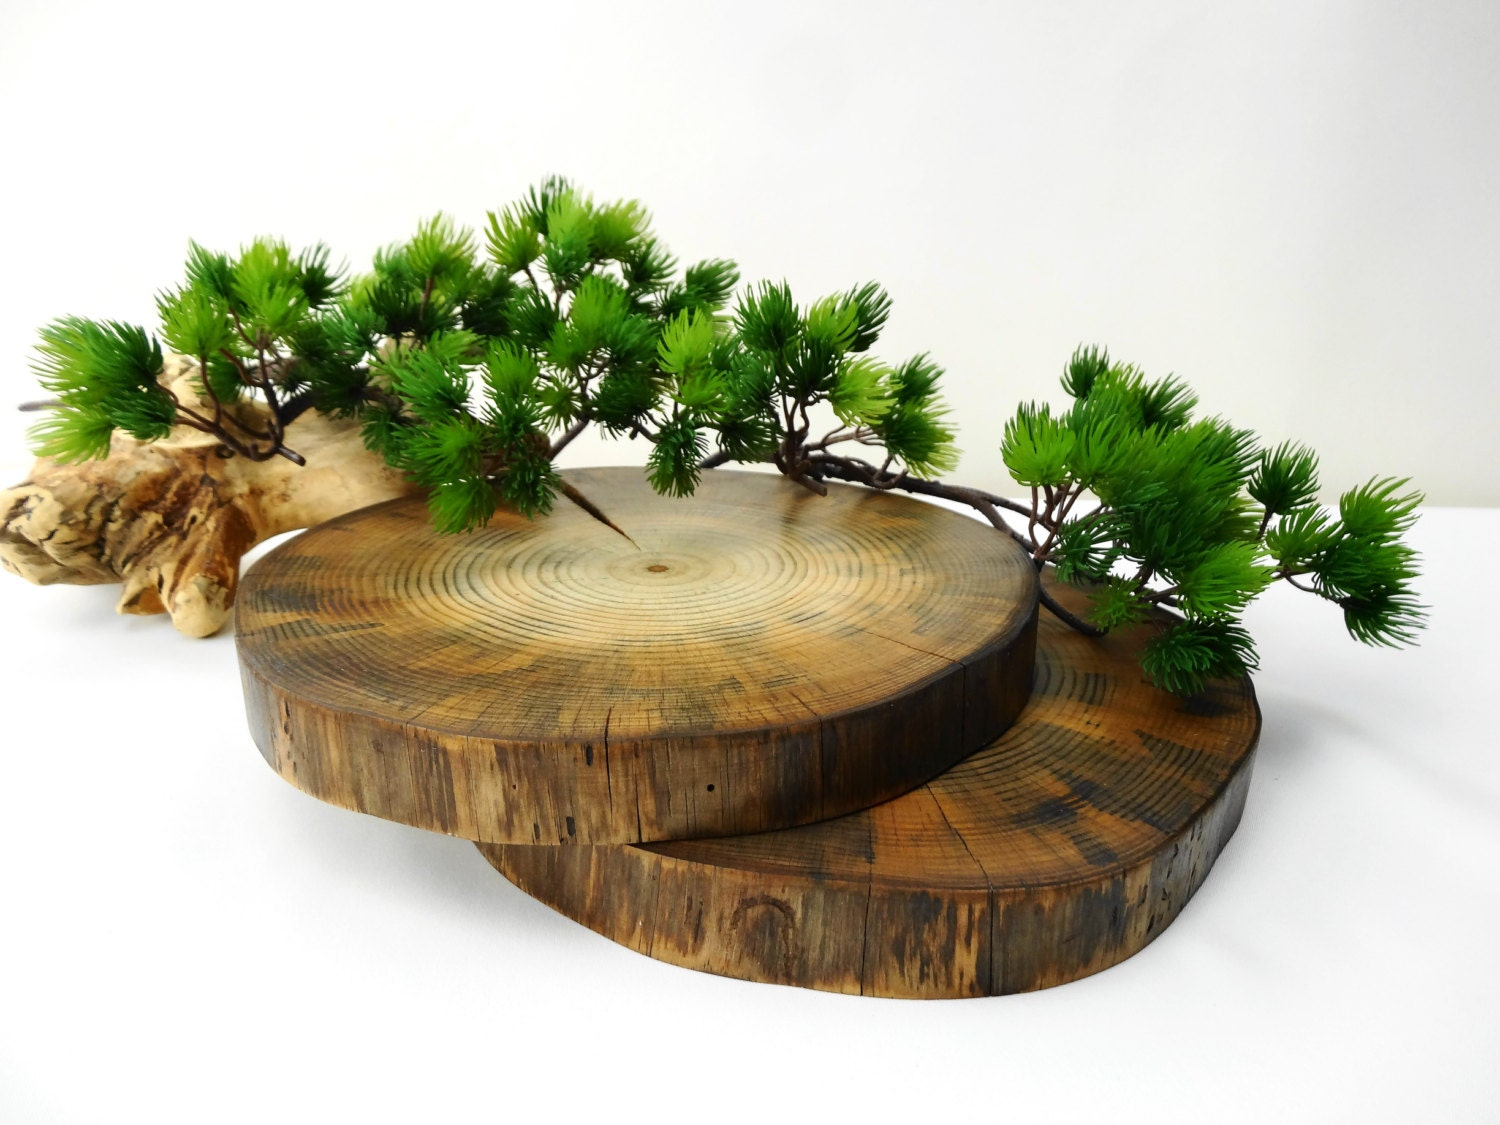 Wood slices 9 inch wood slices tree slice tree trunk slice for Tree trunk slice ideas